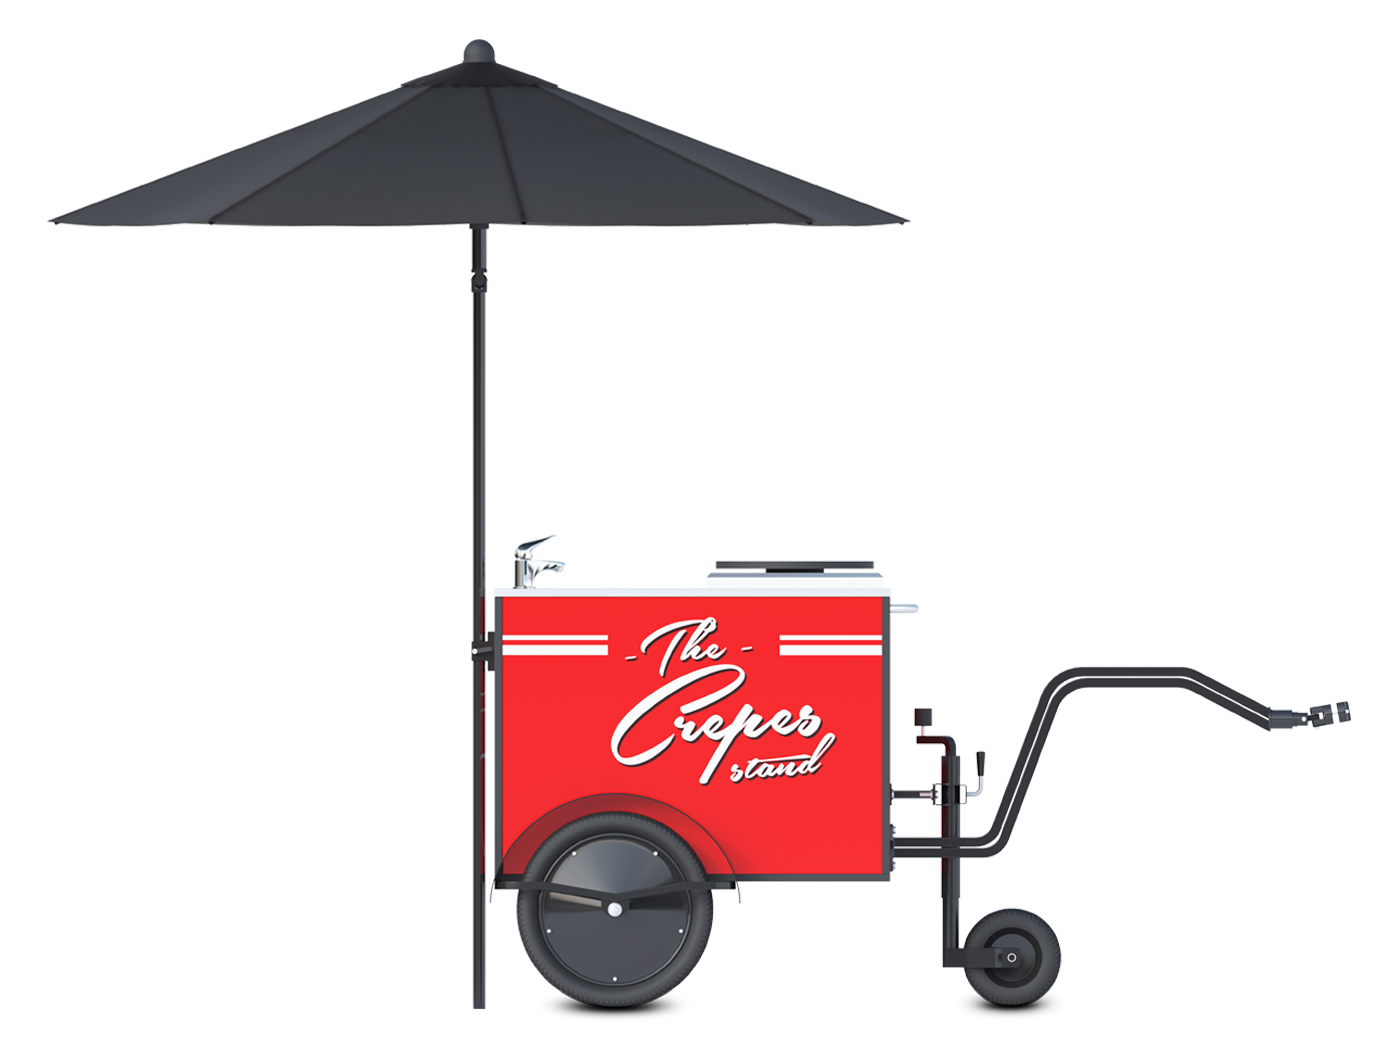 Small crepe cart manufactured by Bizz On Wheels